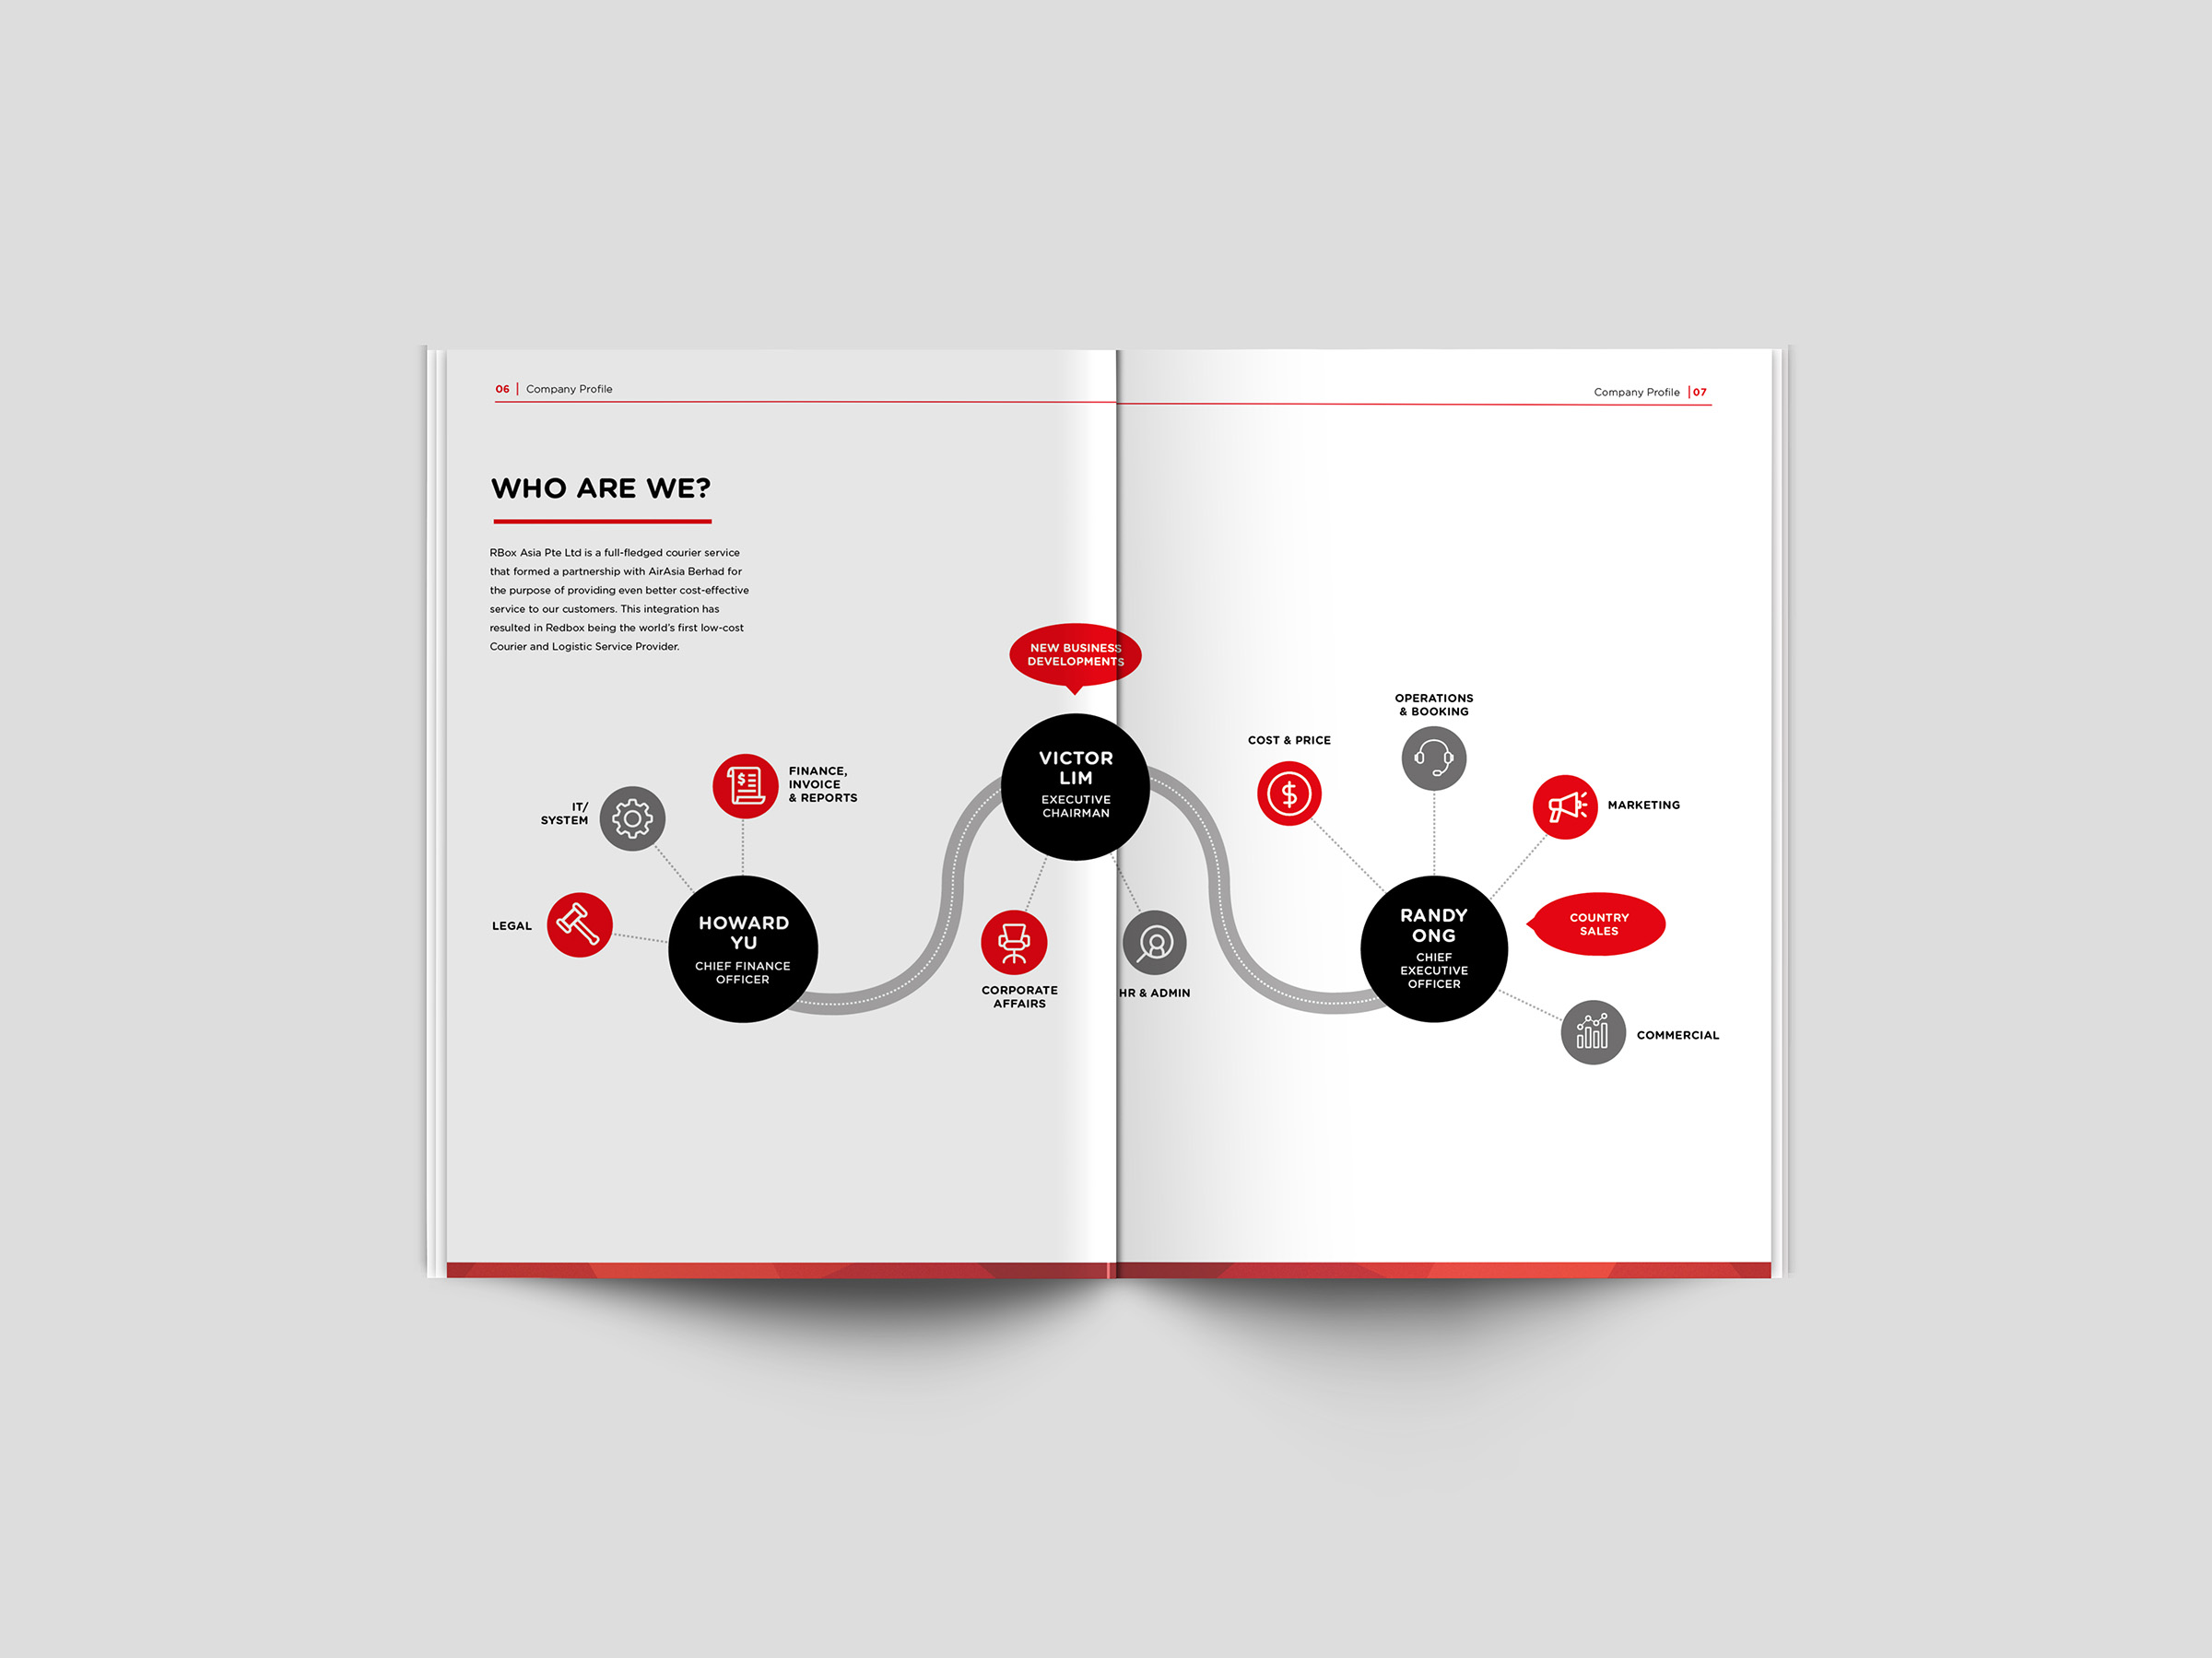 Rbox-AirAsia-Company-profile-design-layout-page-infographics-copywriting_resized.jpg